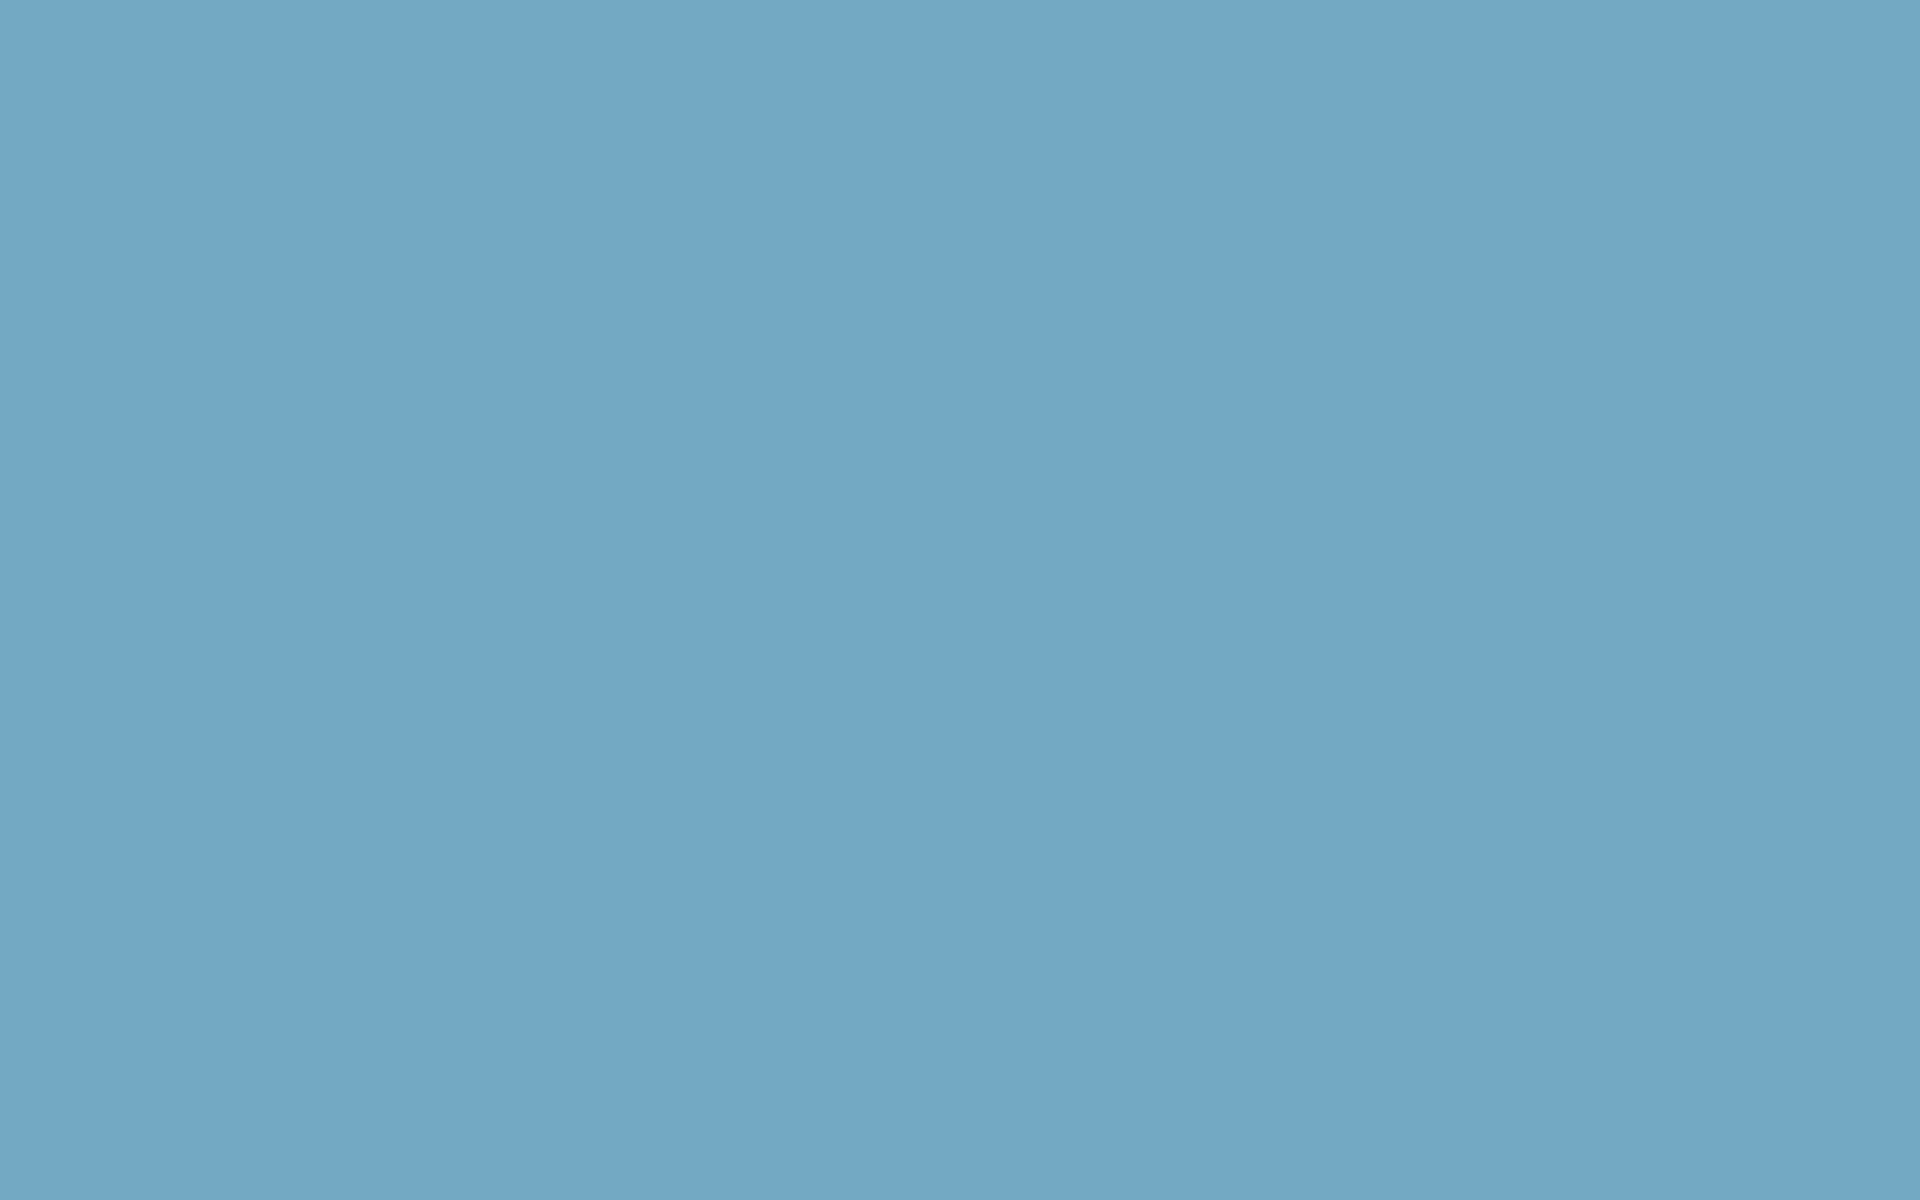 1920x1200 Moonstone Blue Solid Color Background